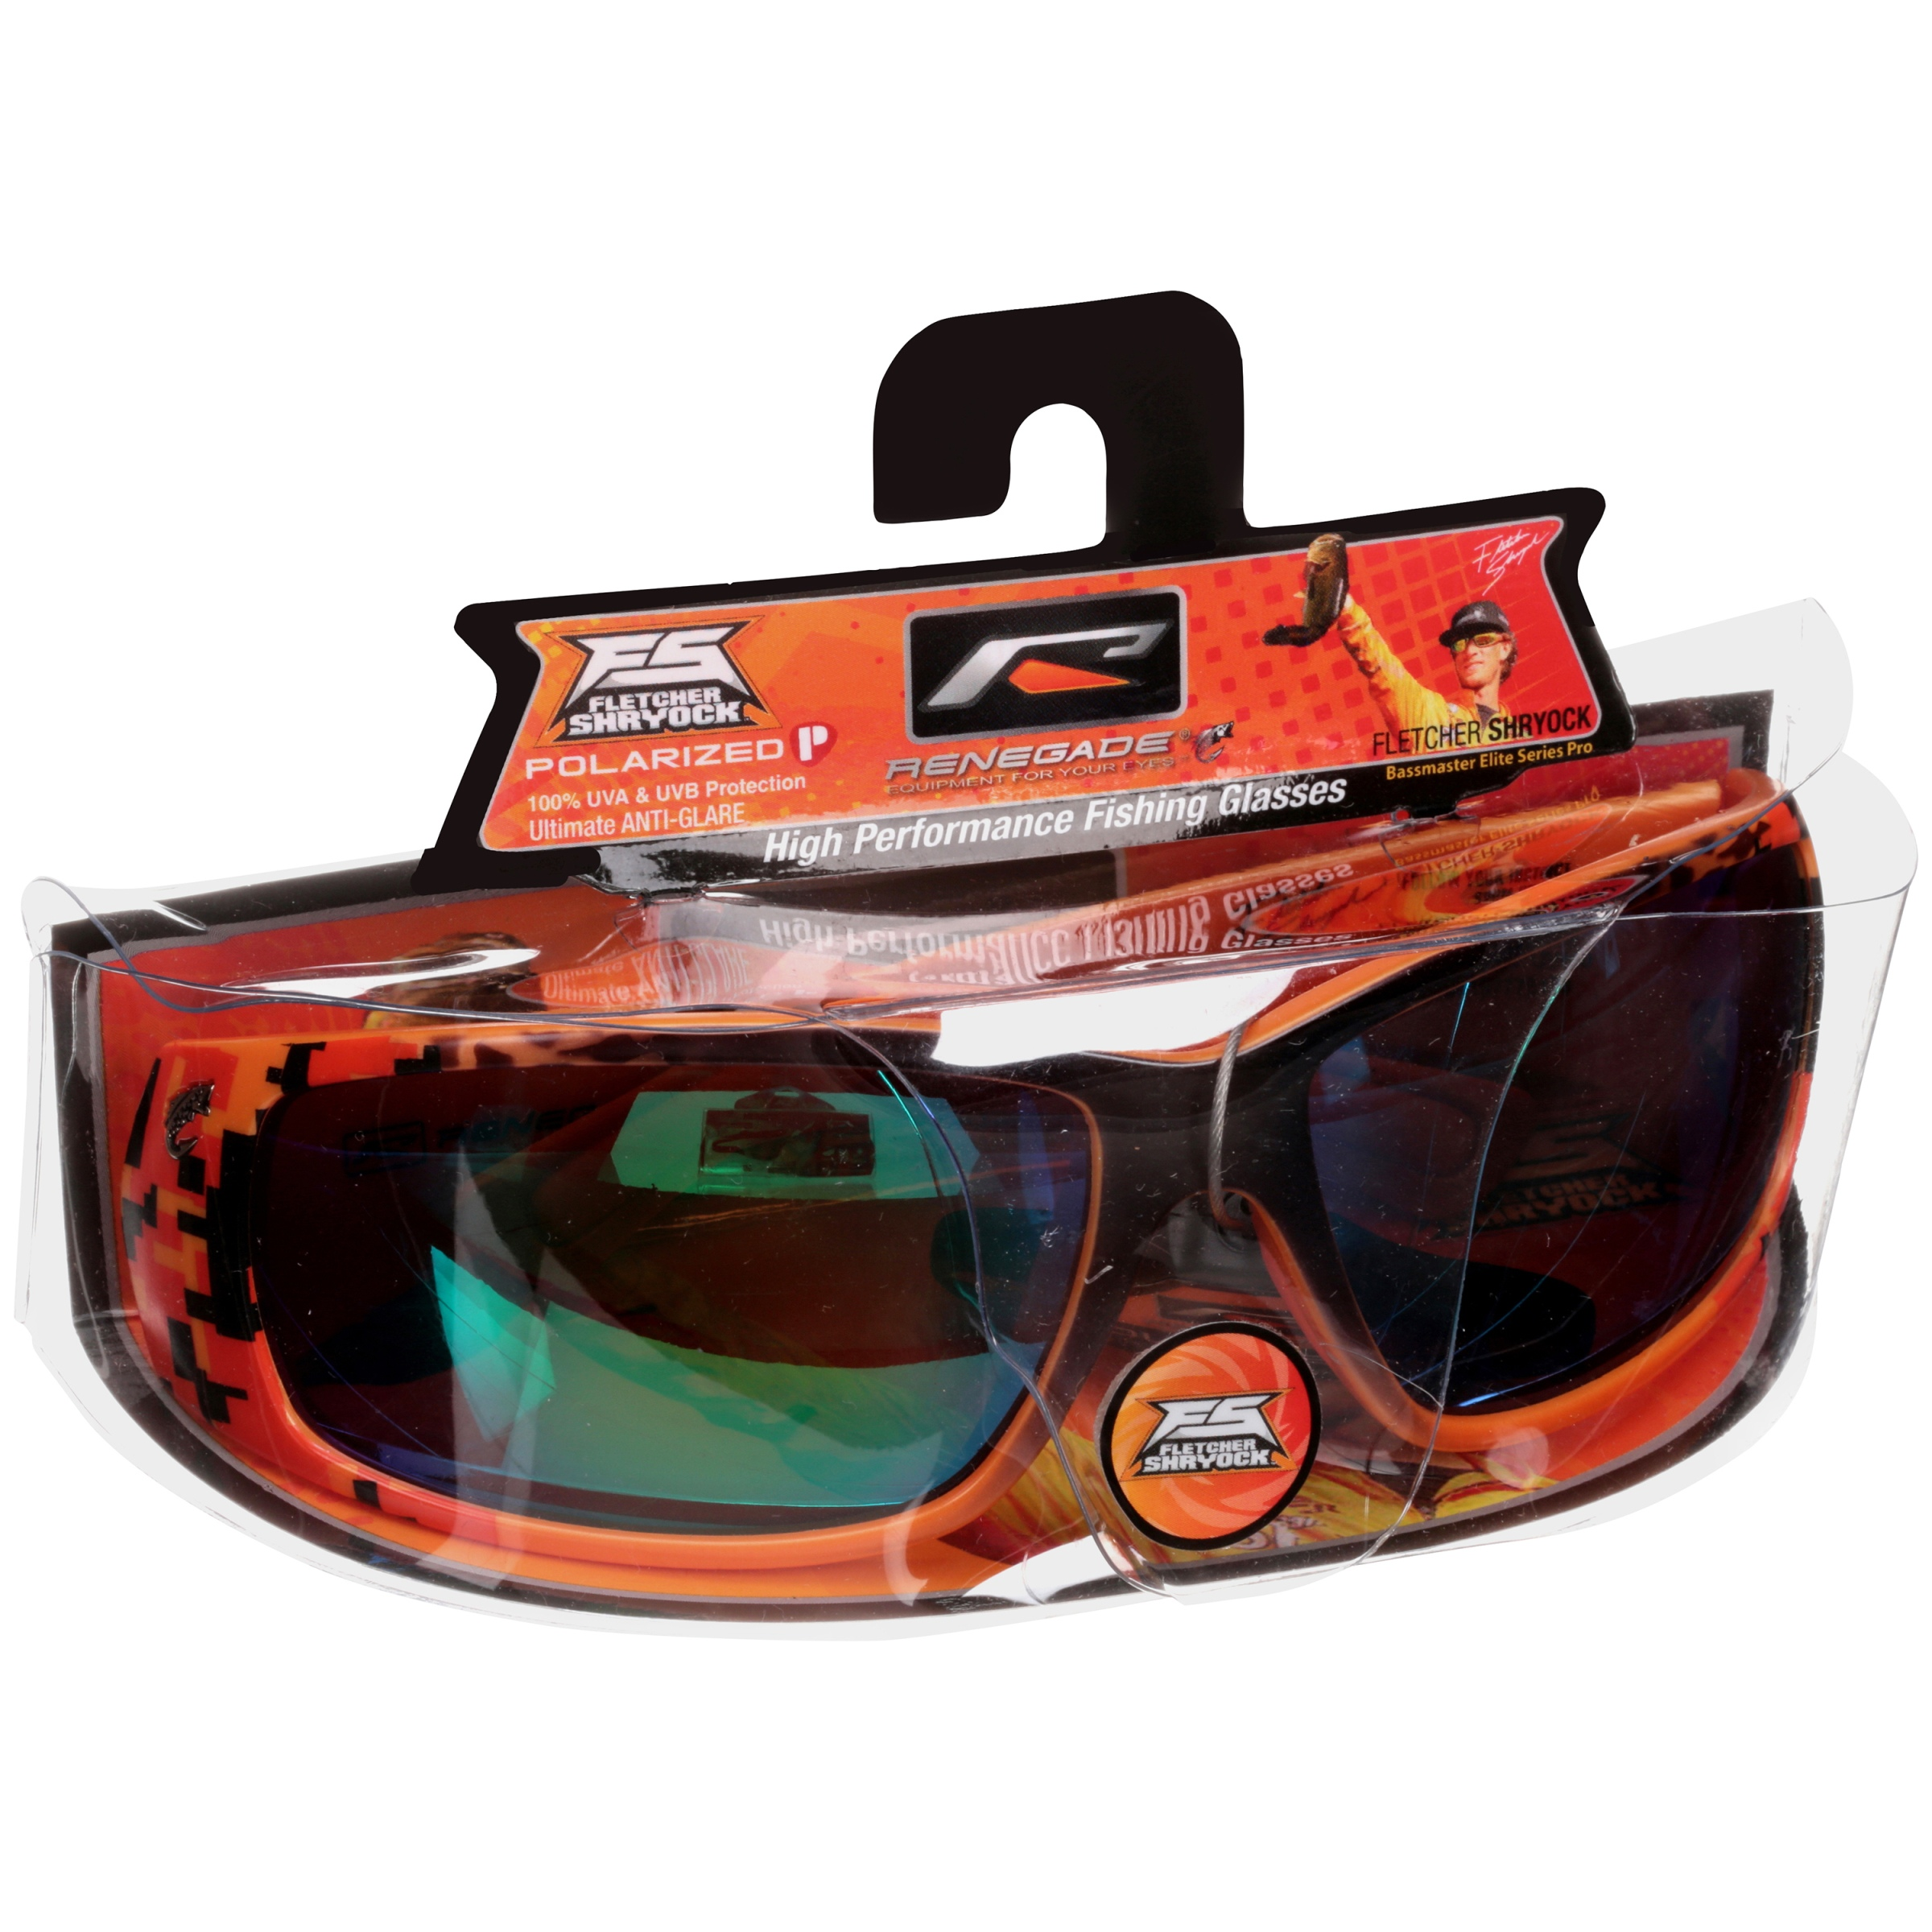 Best Polarized Fishing Sunglasses Under 100 - Best Glasses ...